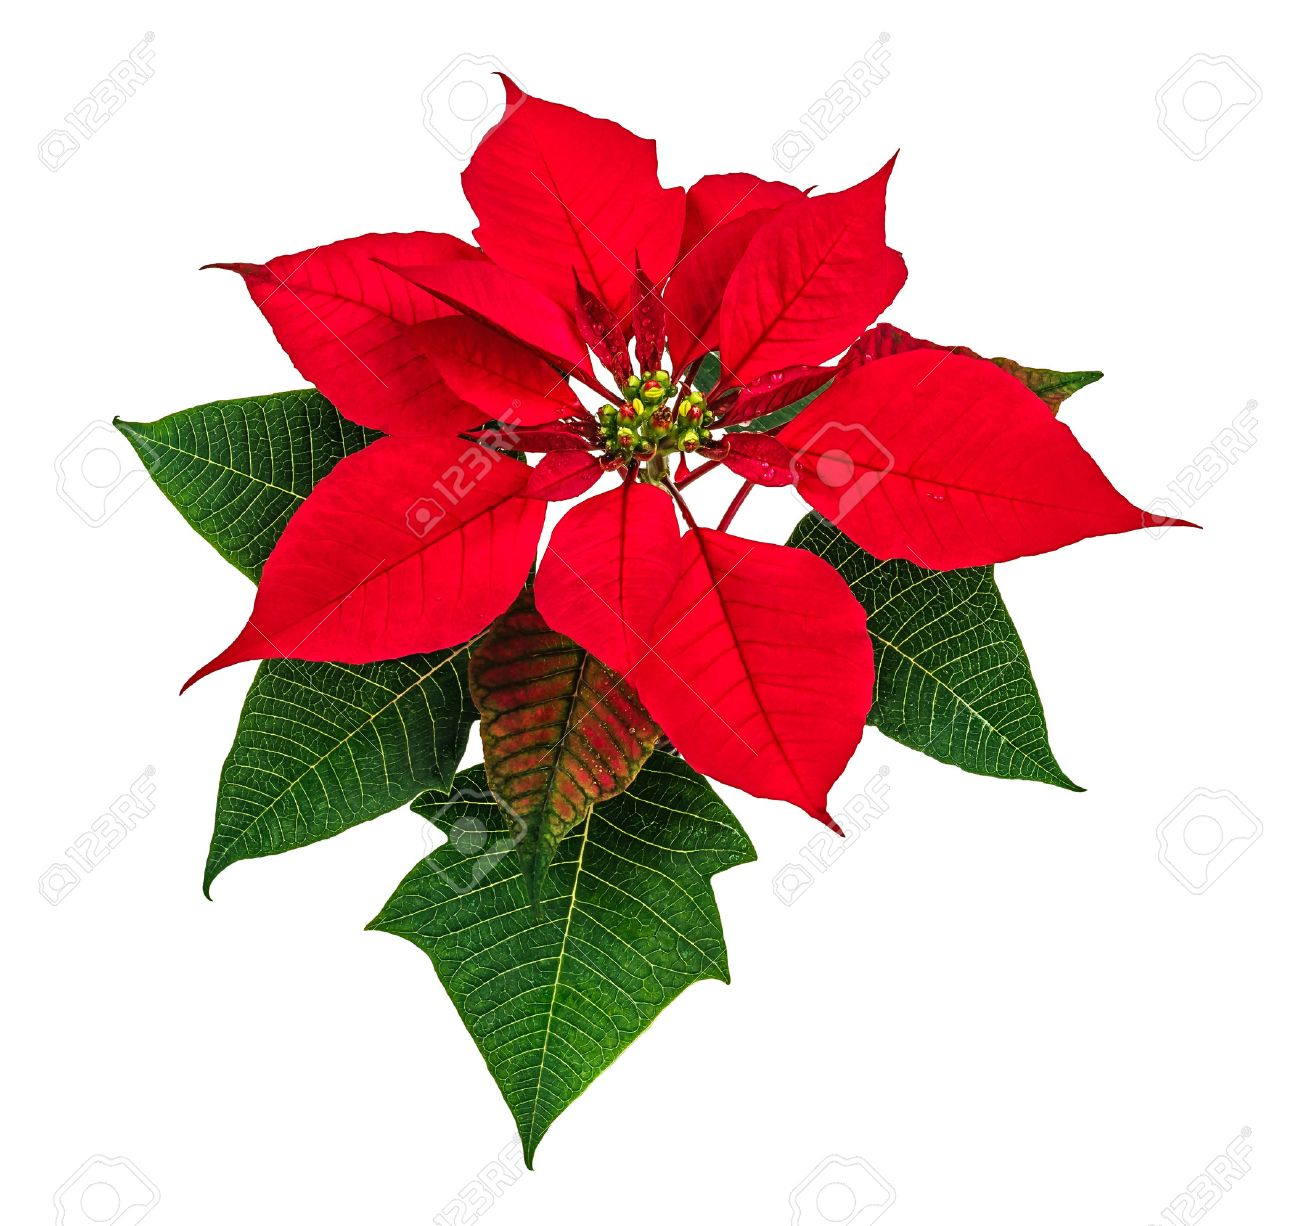 Red Christmas Flower.Christmas Red Poinsettia Flower Isolated On White Background